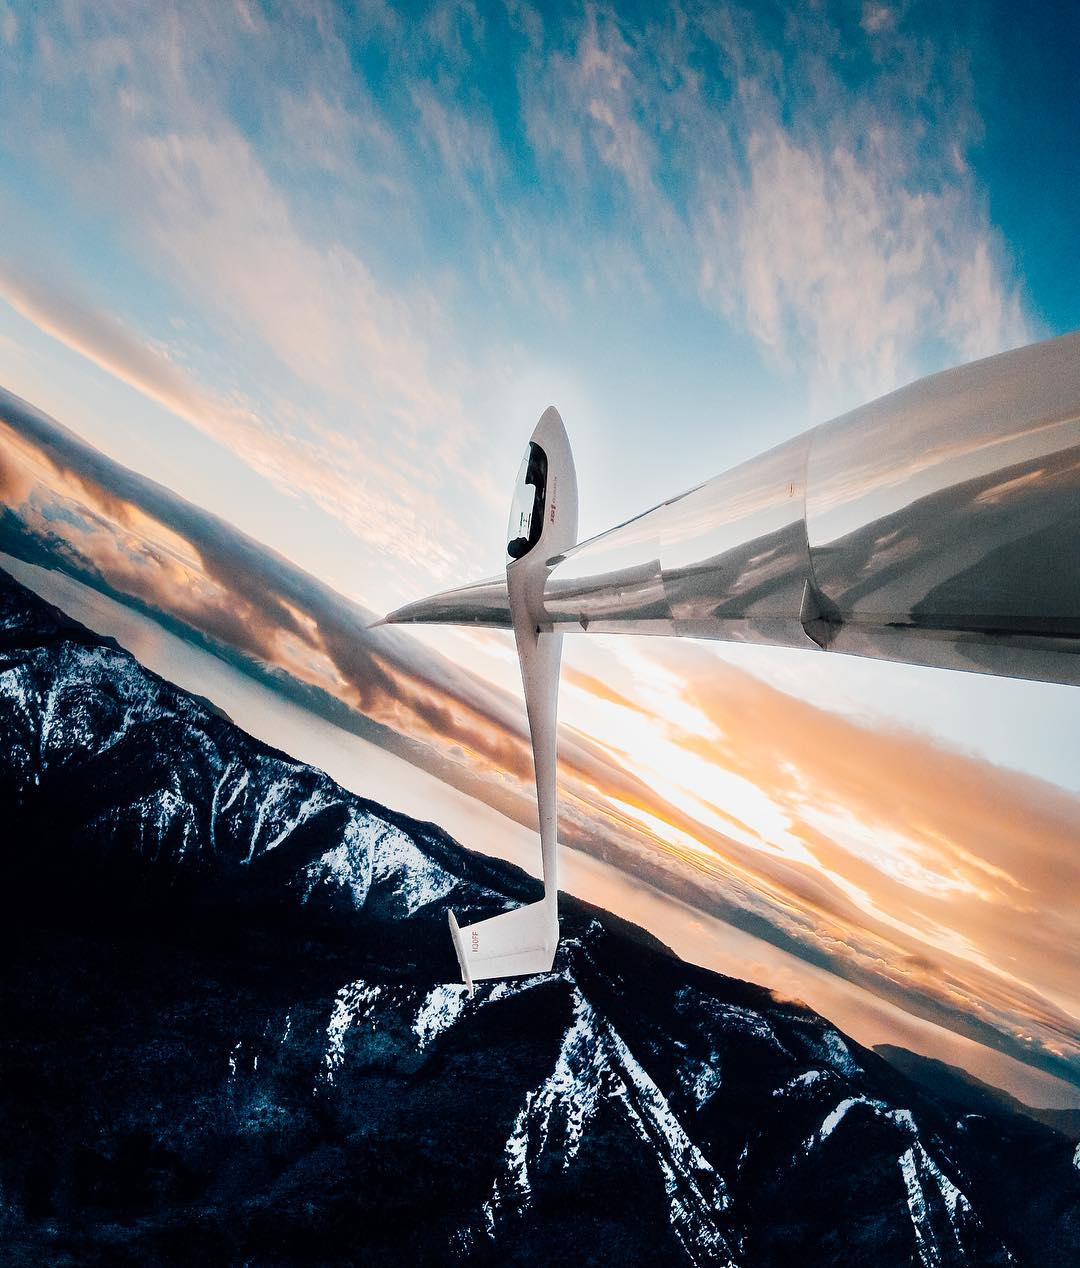 Photo of the Day! Gordon Boettger snapped this gem while having fun performing aerobatics in his #glider. #GoPro #GoProFlight #LakeTahoe